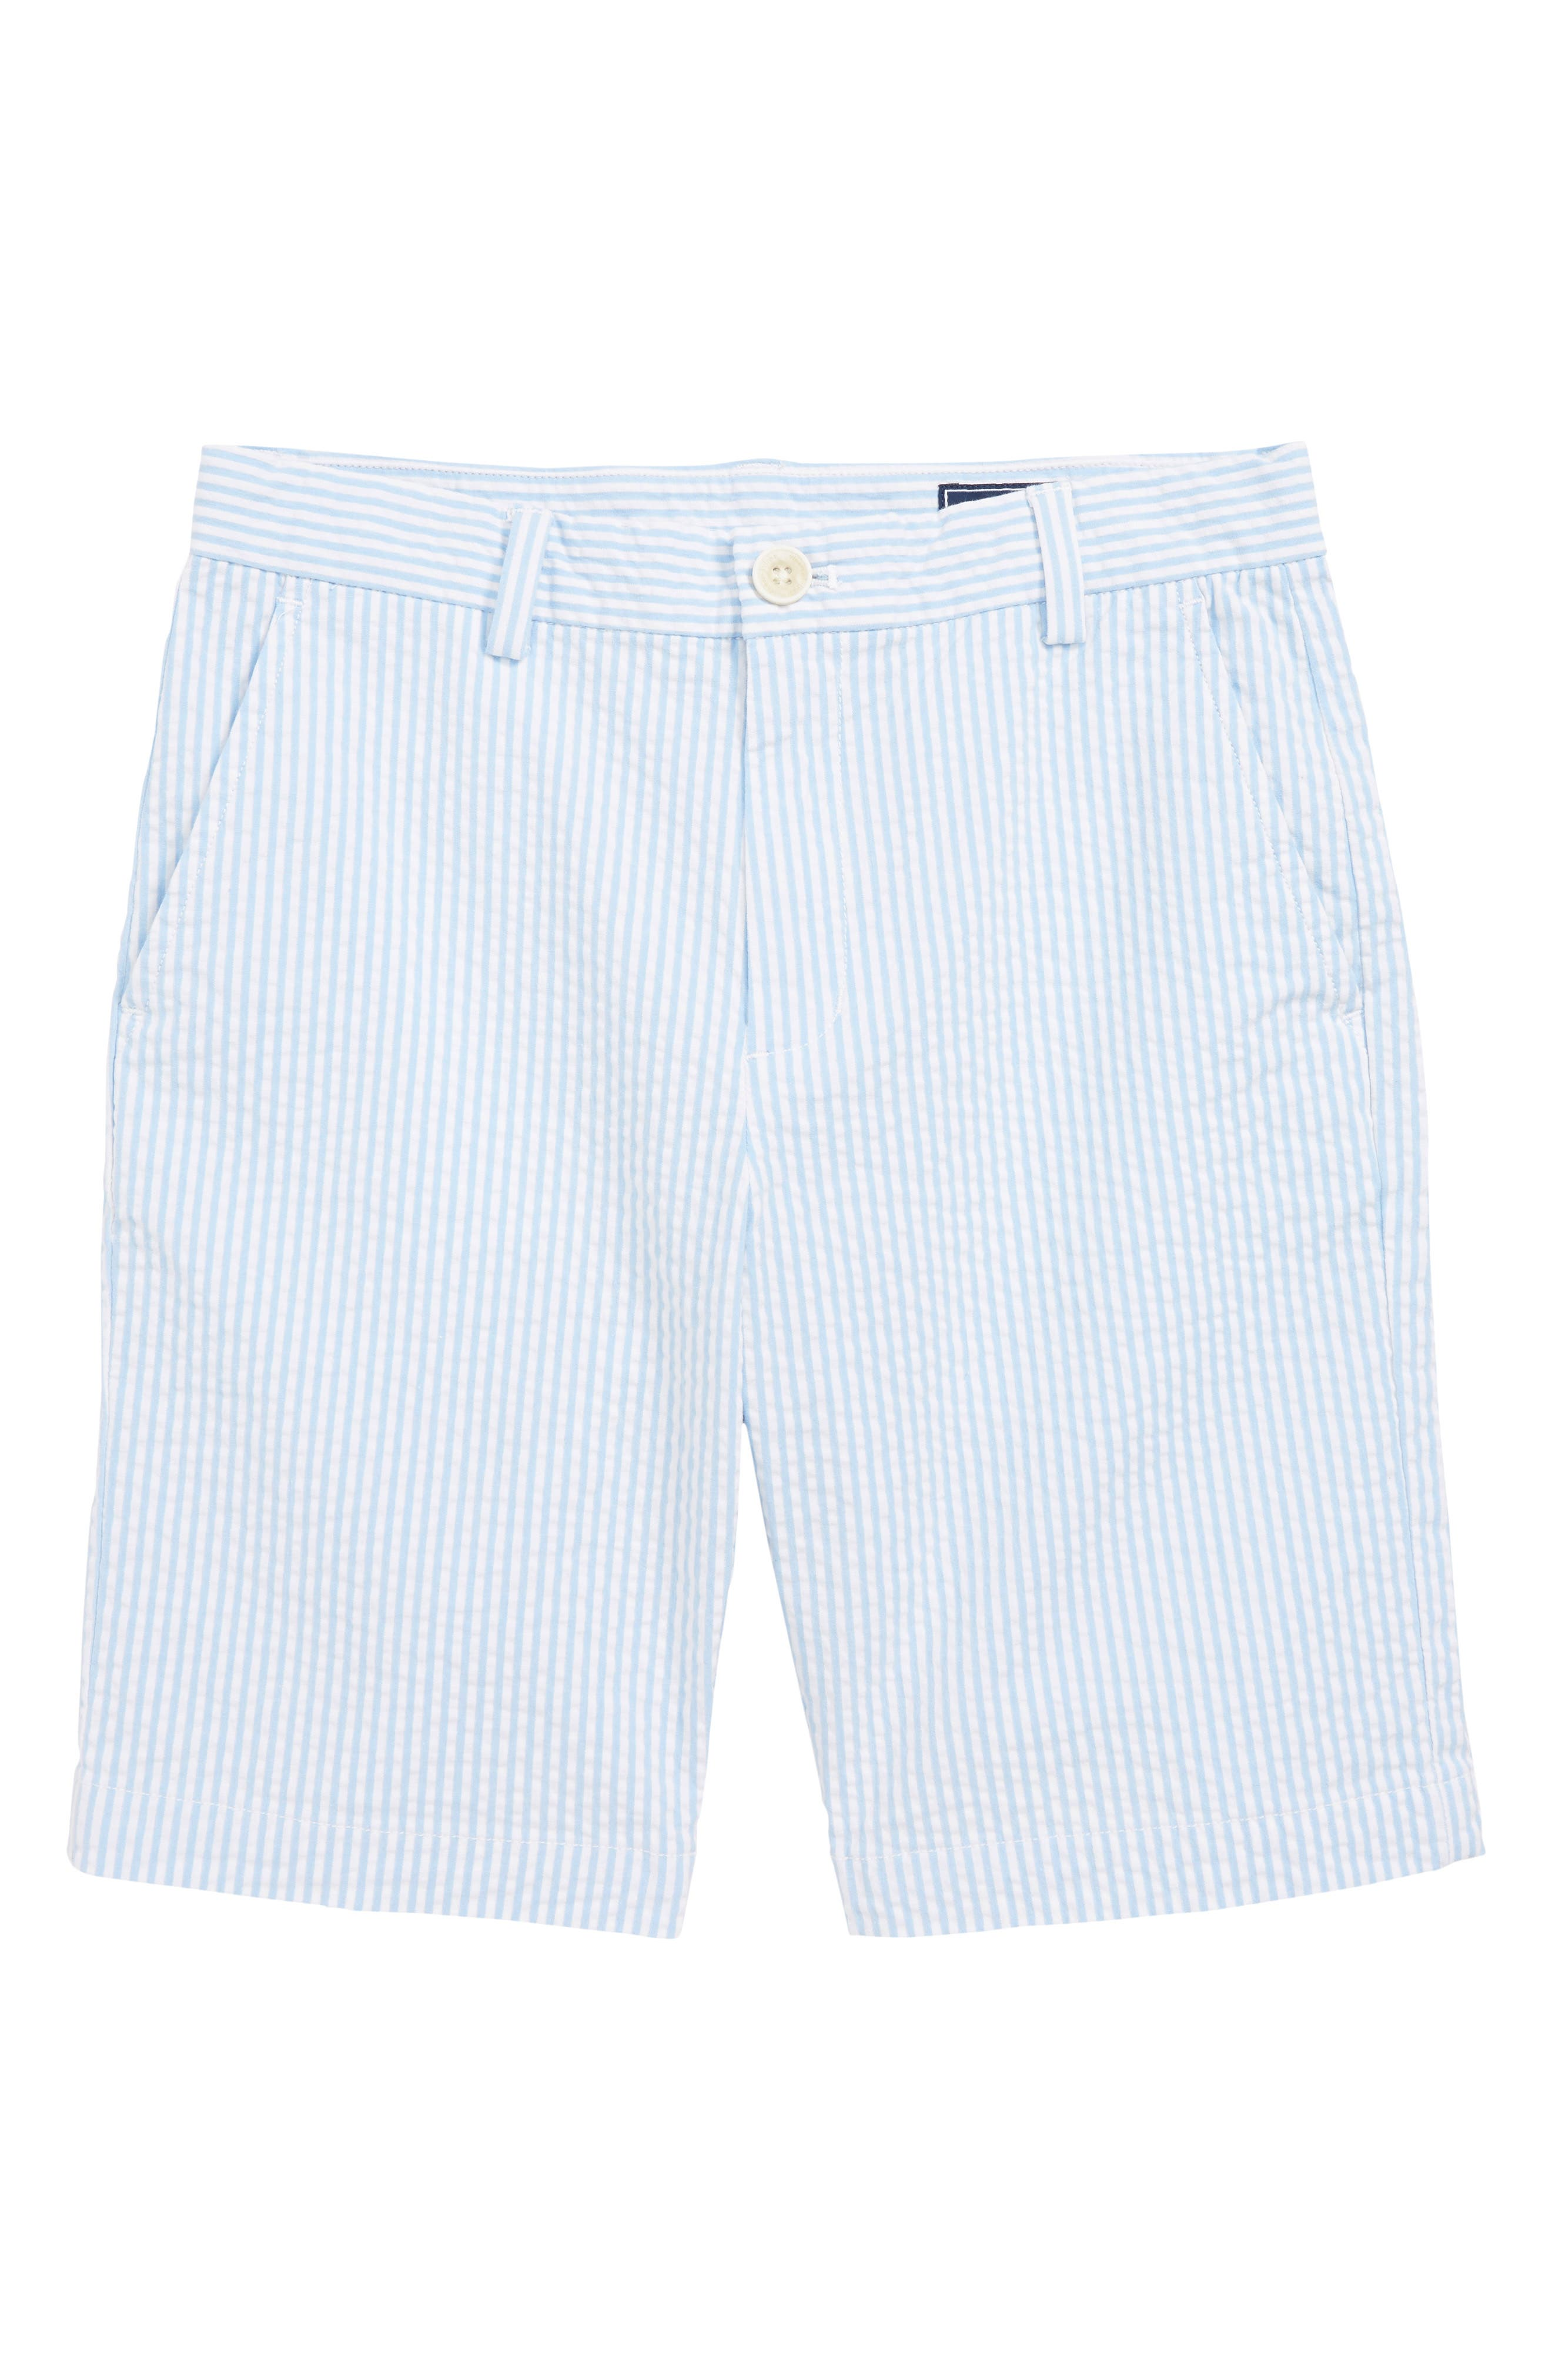 Toddler Boys Vineyard Vines Breaker Seersucker Shorts Size 4T  Blue